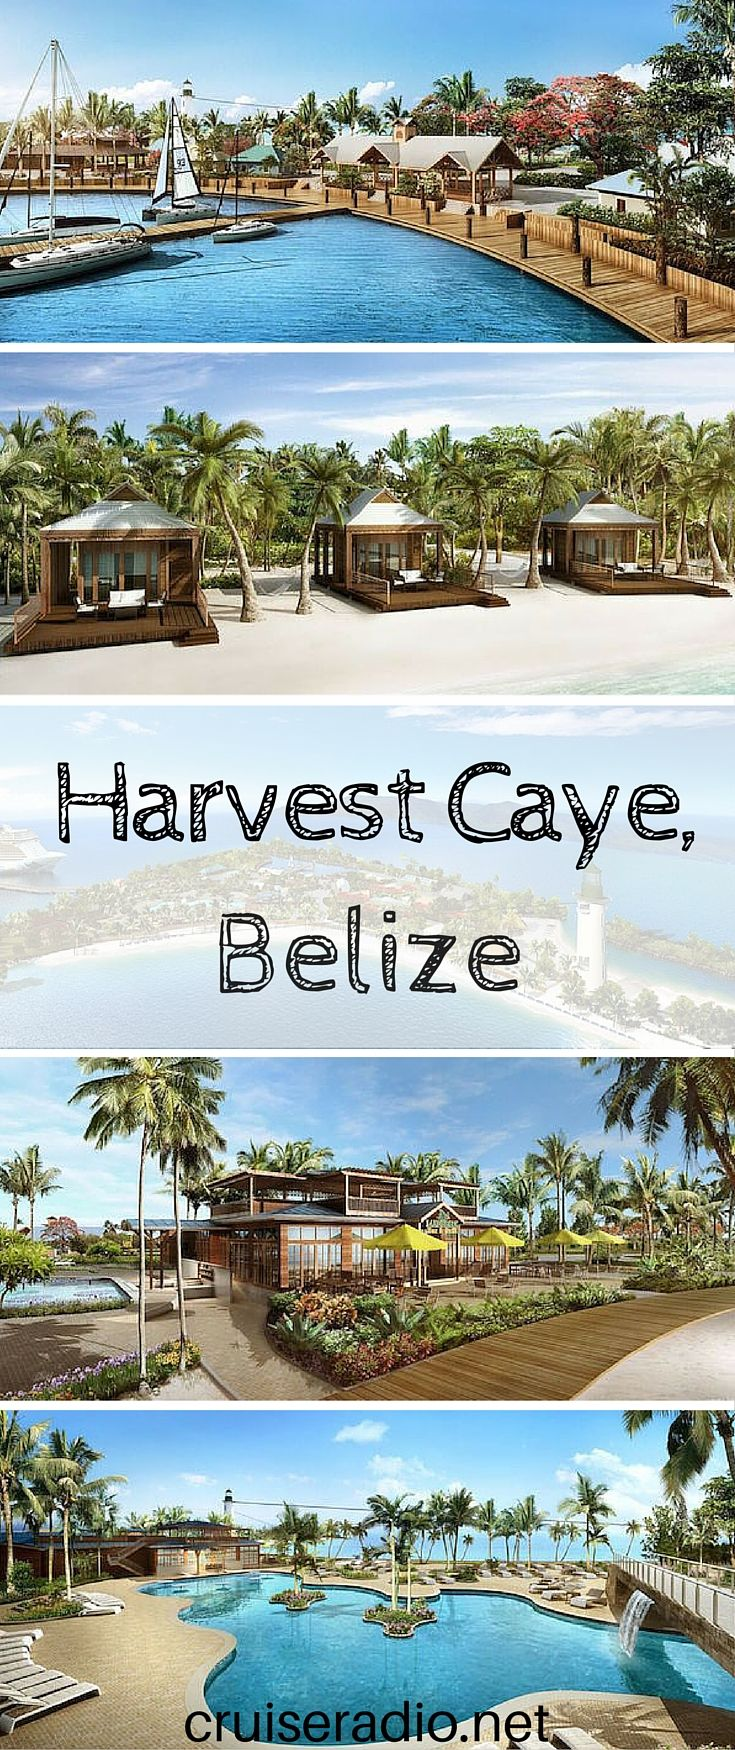 Norwegian's New private island in Belize